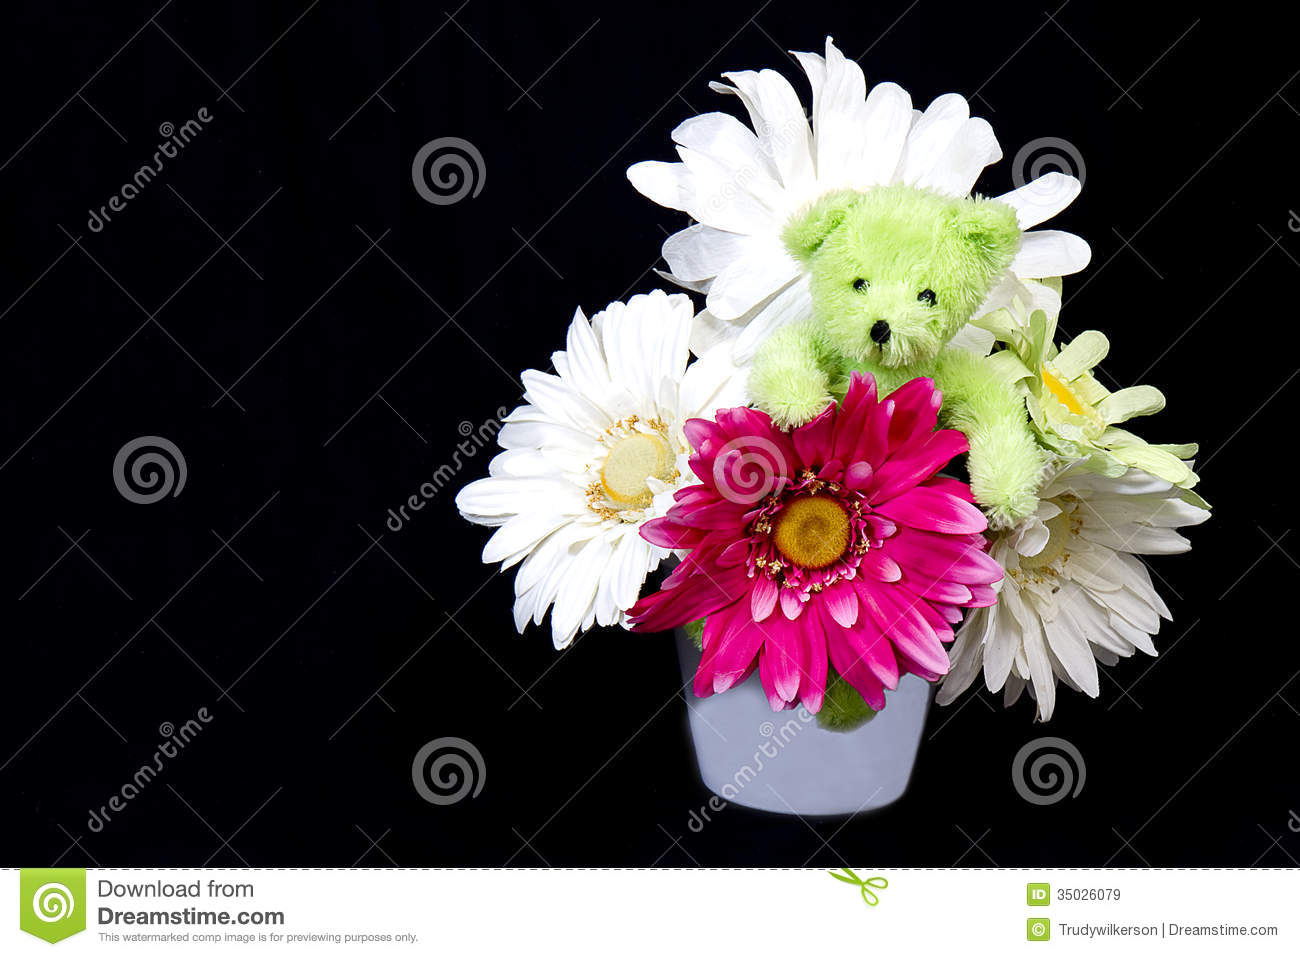 Teddy bear flowers stock photos royalty free pictures teddy bear in flowers cute green teddy bear snuggled in a bouquet of faux paper izmirmasajfo